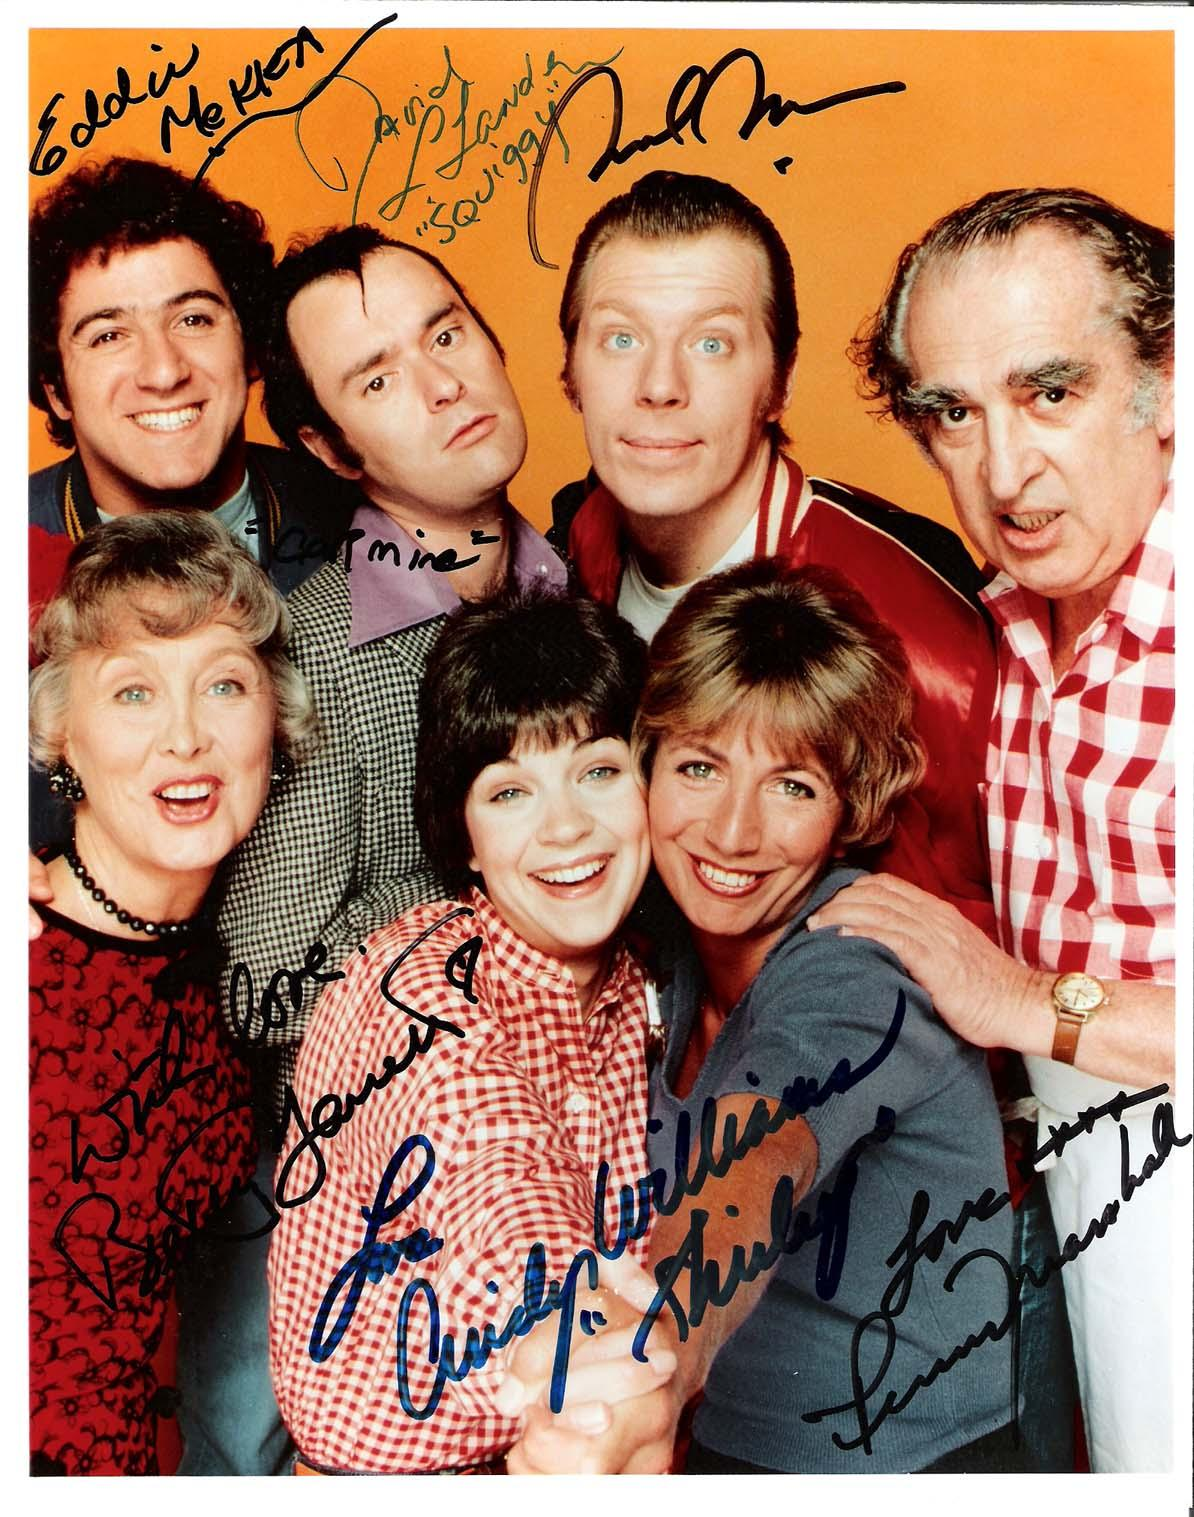 "Michael Williams Autographed Photograph - LAVERNE & SHIRLEY"" by PENNY MARSHALL CINDY MCKEAN DAVID L LANDER EDDIE MEKKA BETTY GARRETT 8x10 Color"